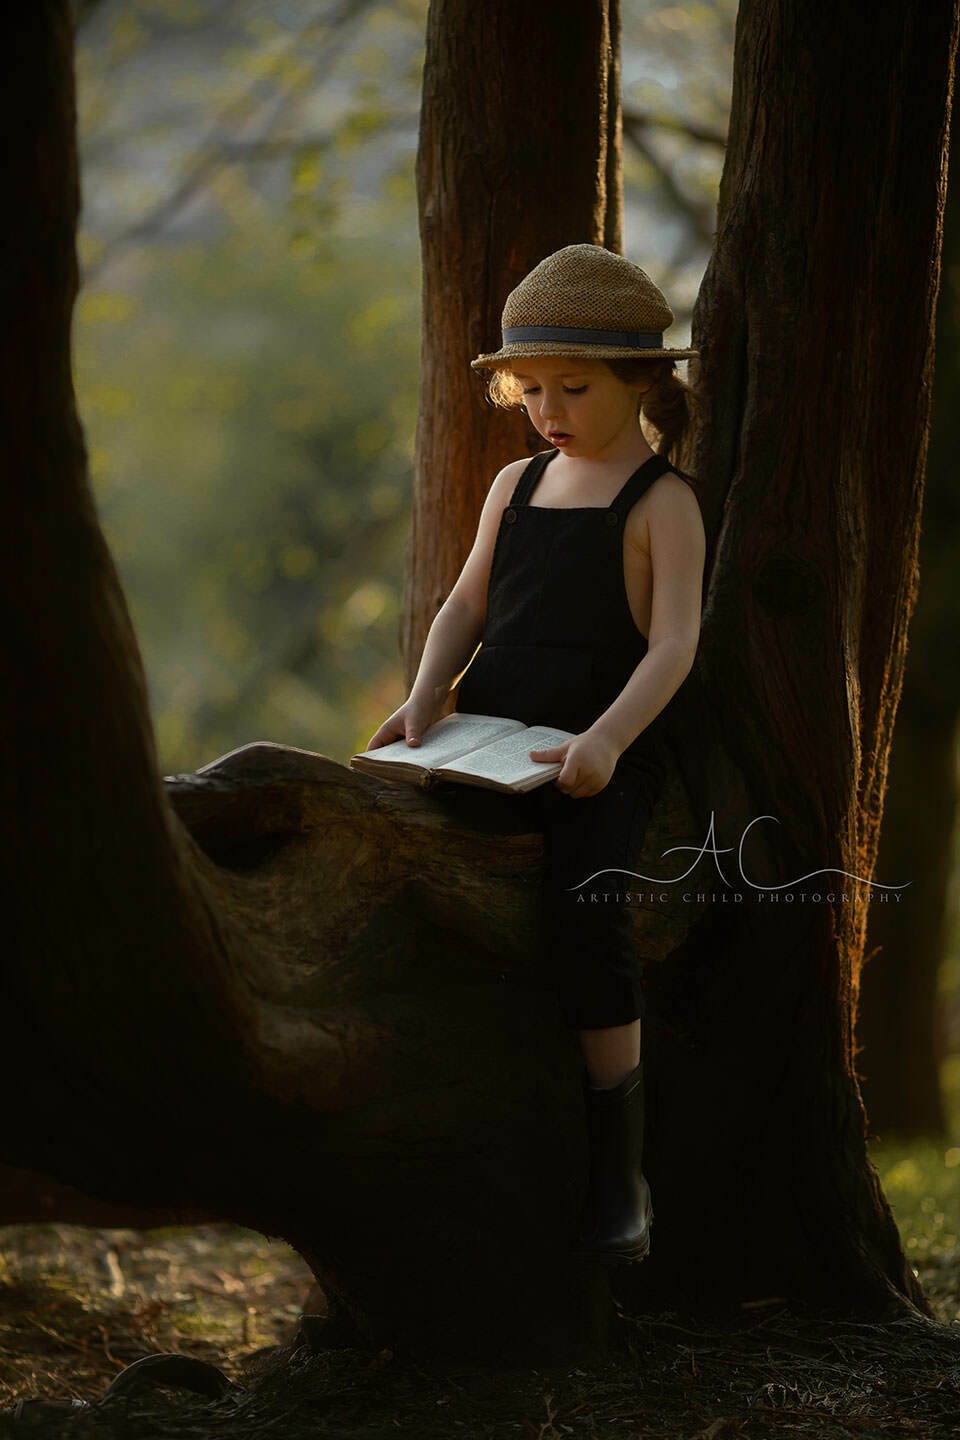 Professional London Children Photos | 4 year old boy with a hat reads a book while sitting on a tree